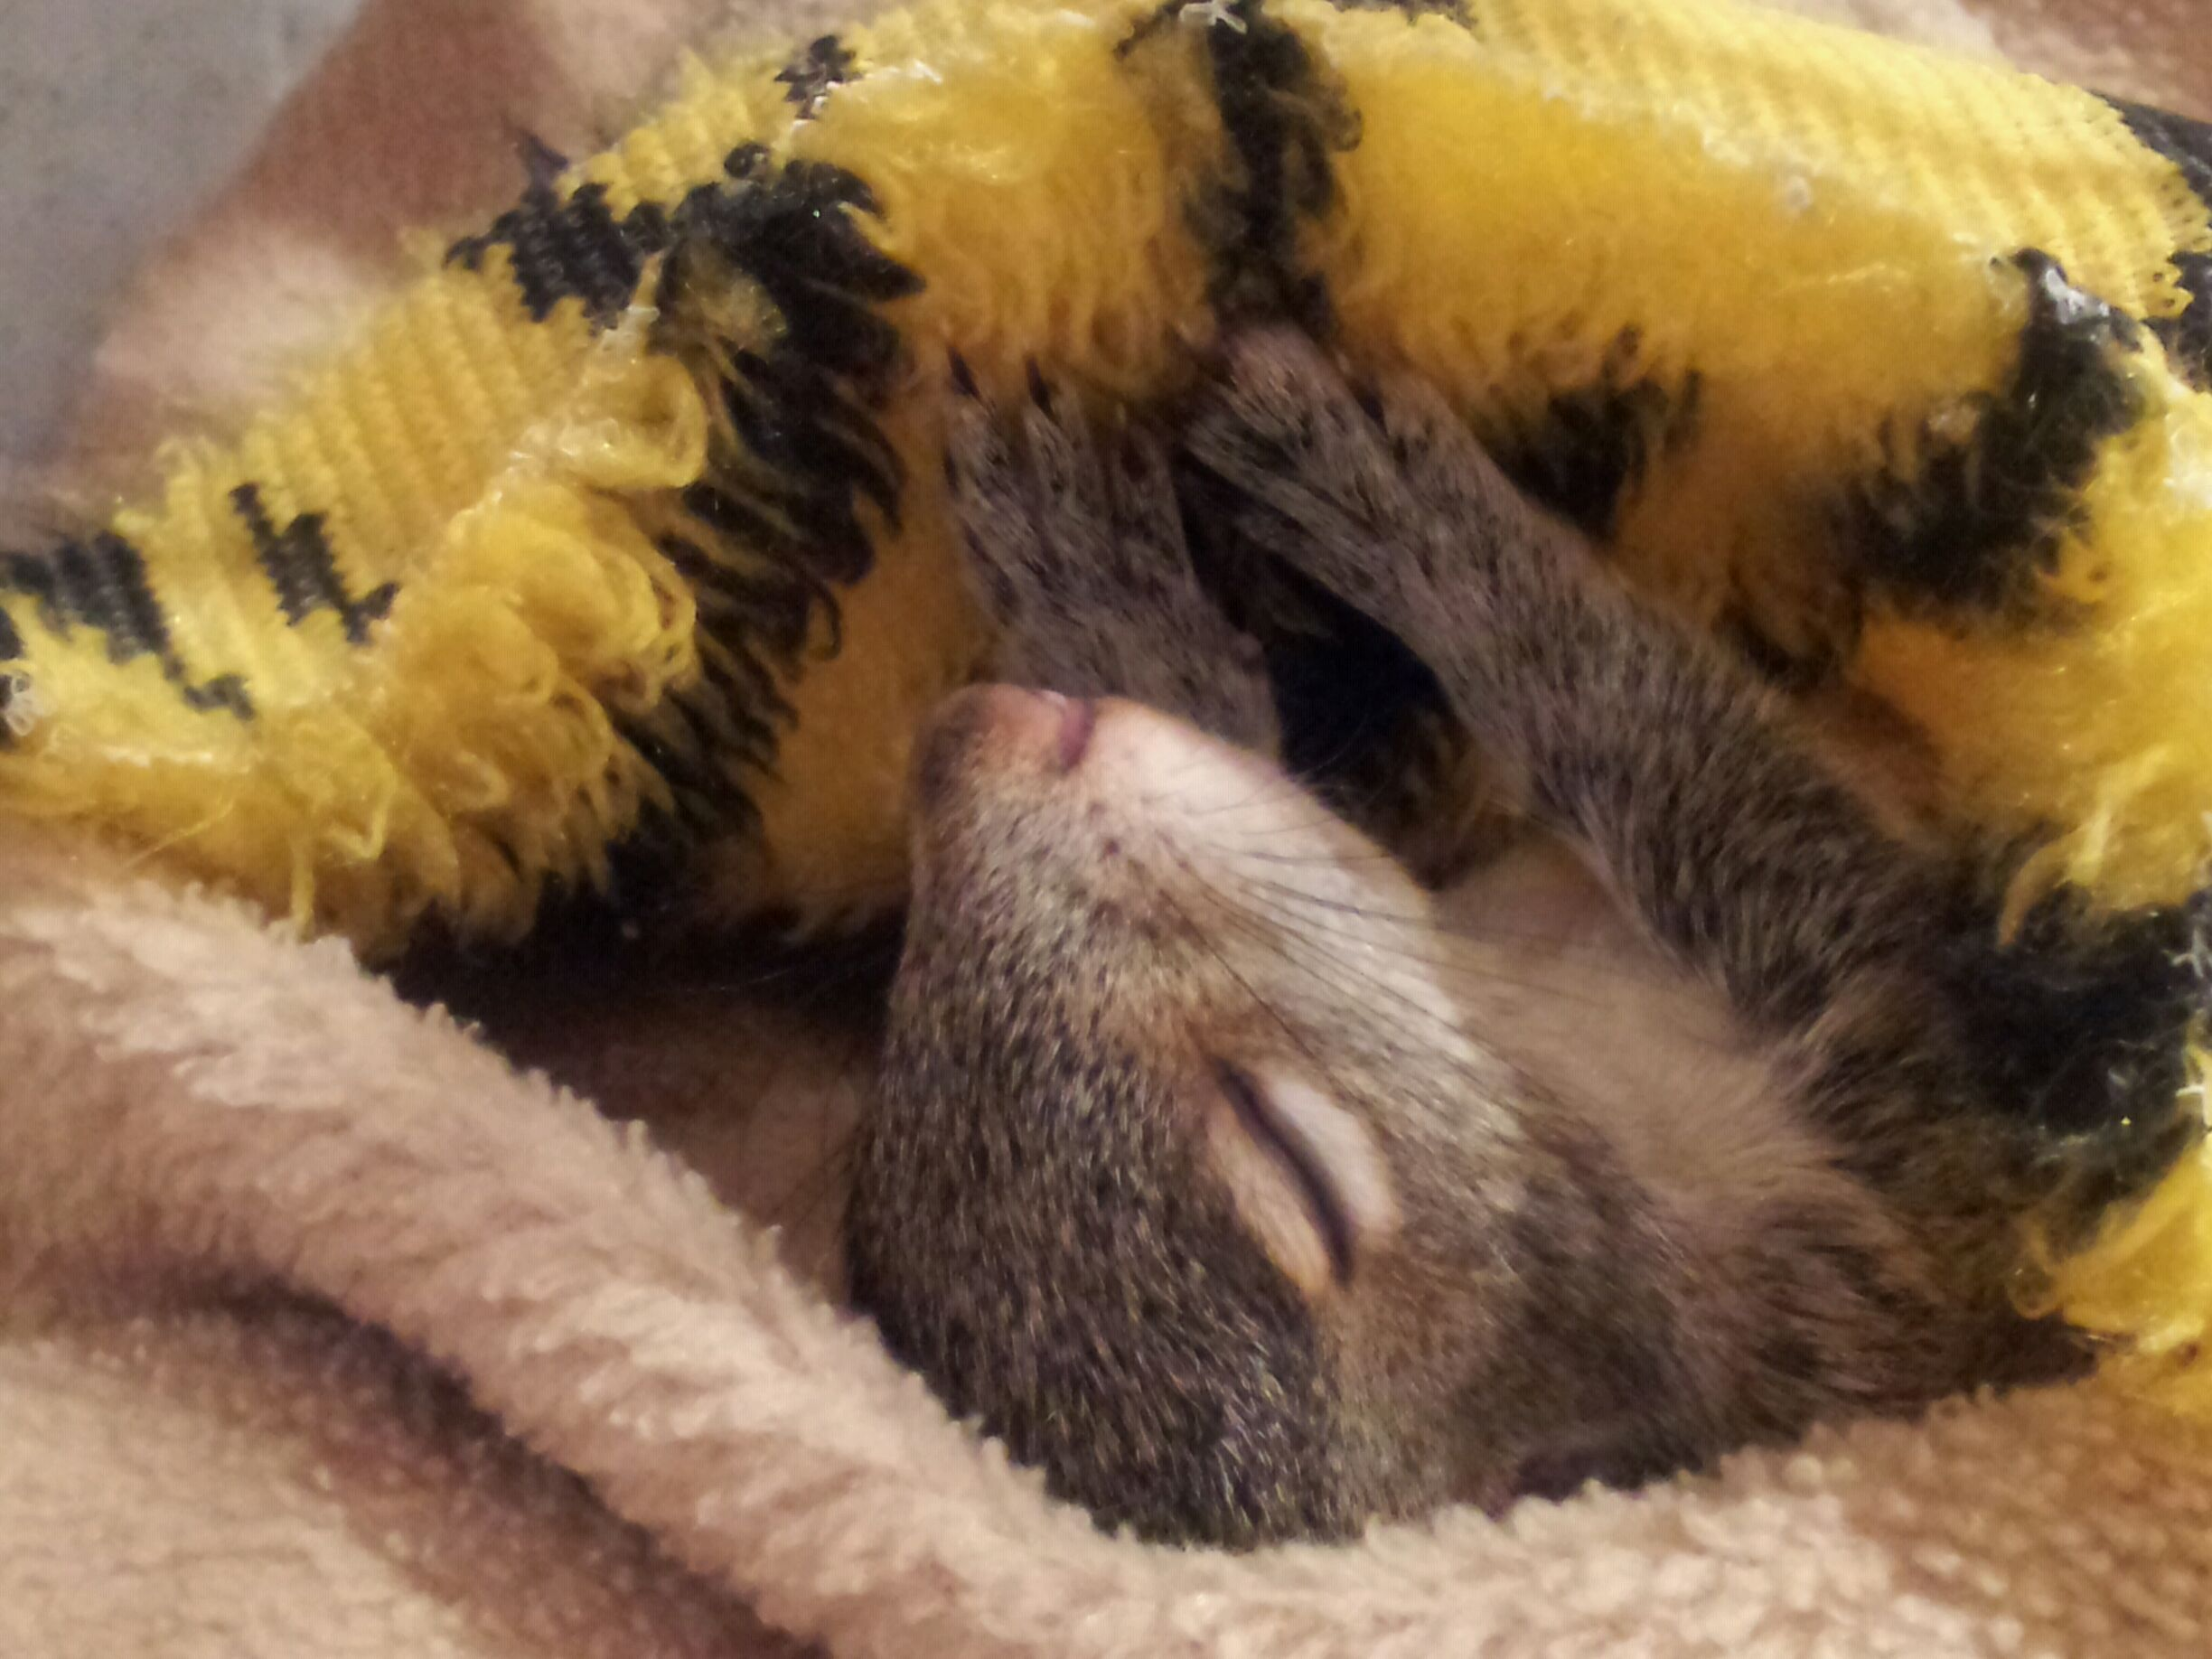 """Birdy"" the baby squirrel sleeps in cozy blankets"